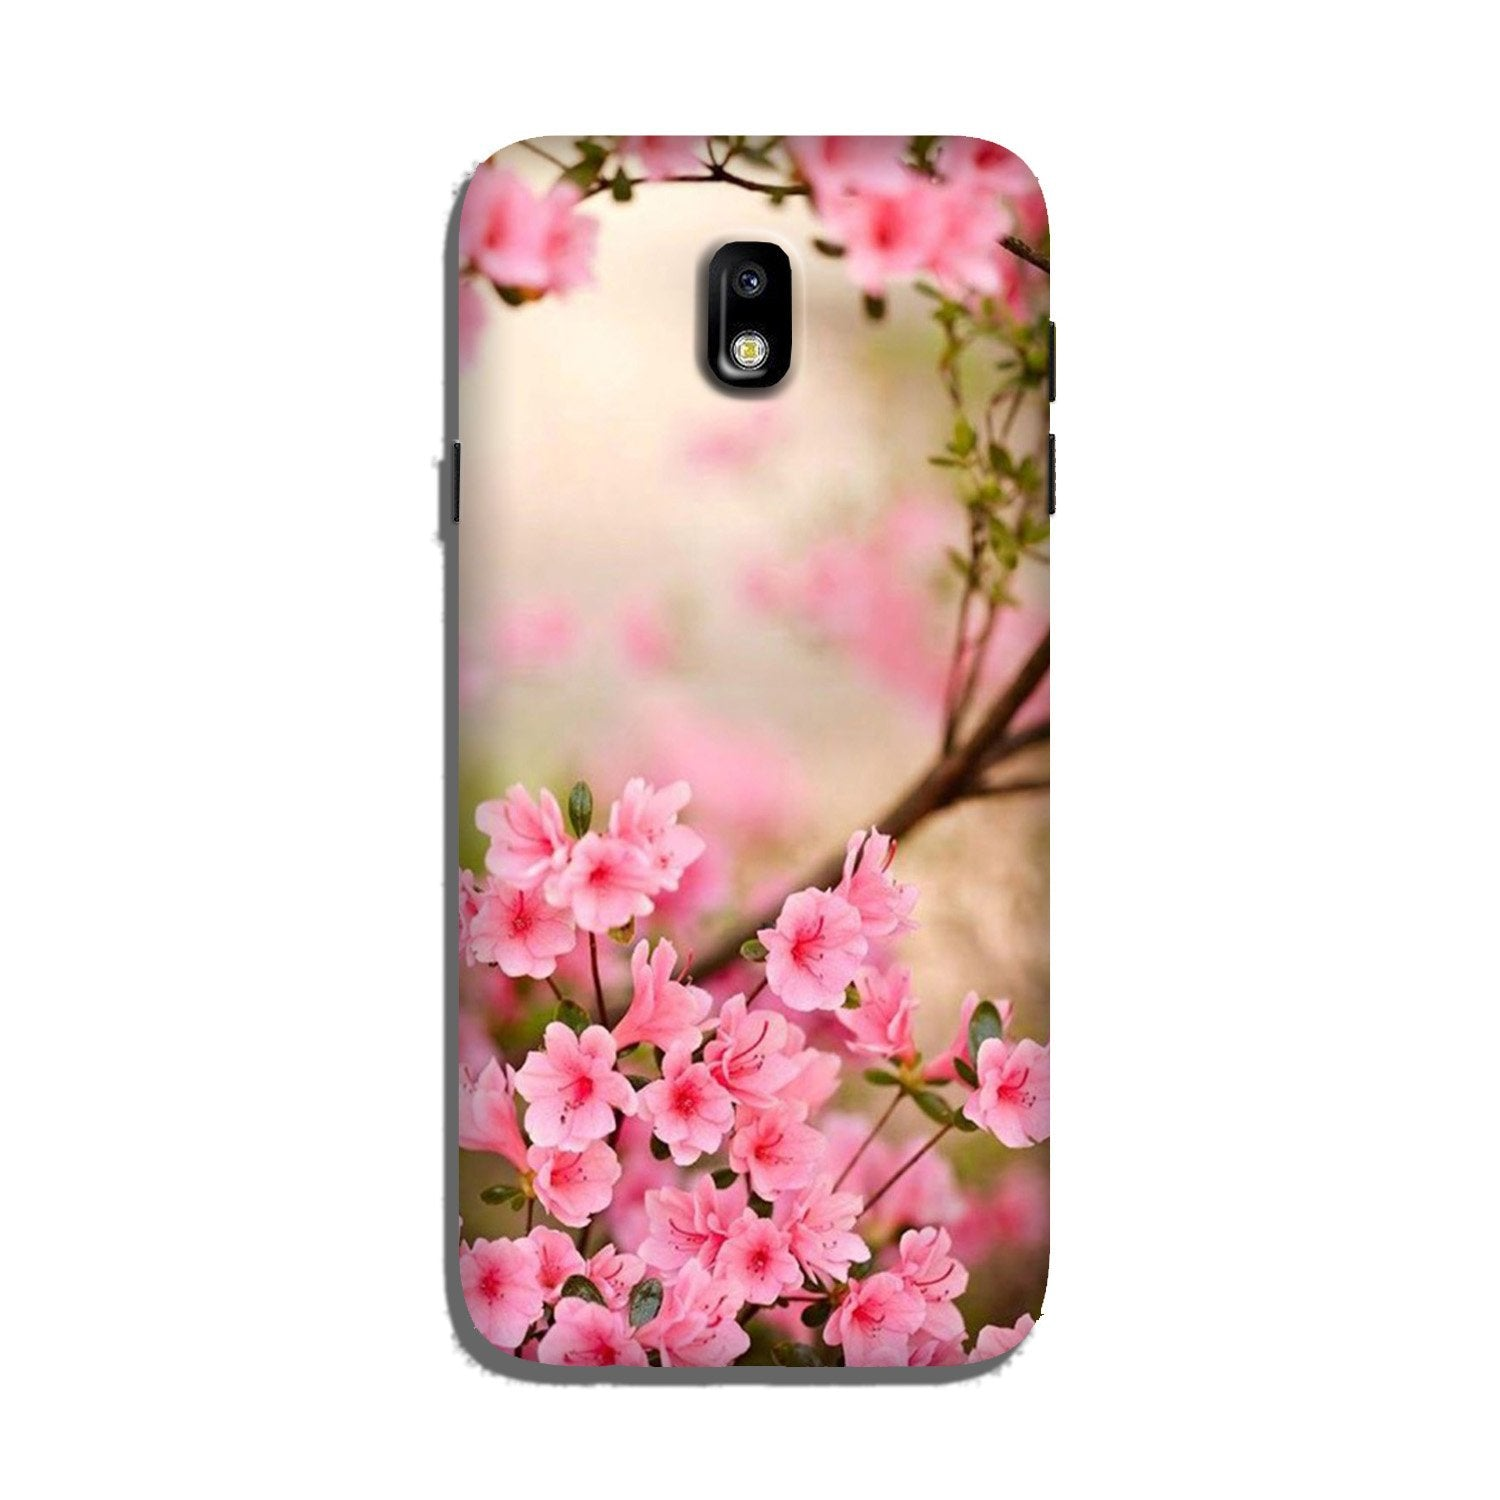 Pink flowers Case for Galaxy J5 Pro